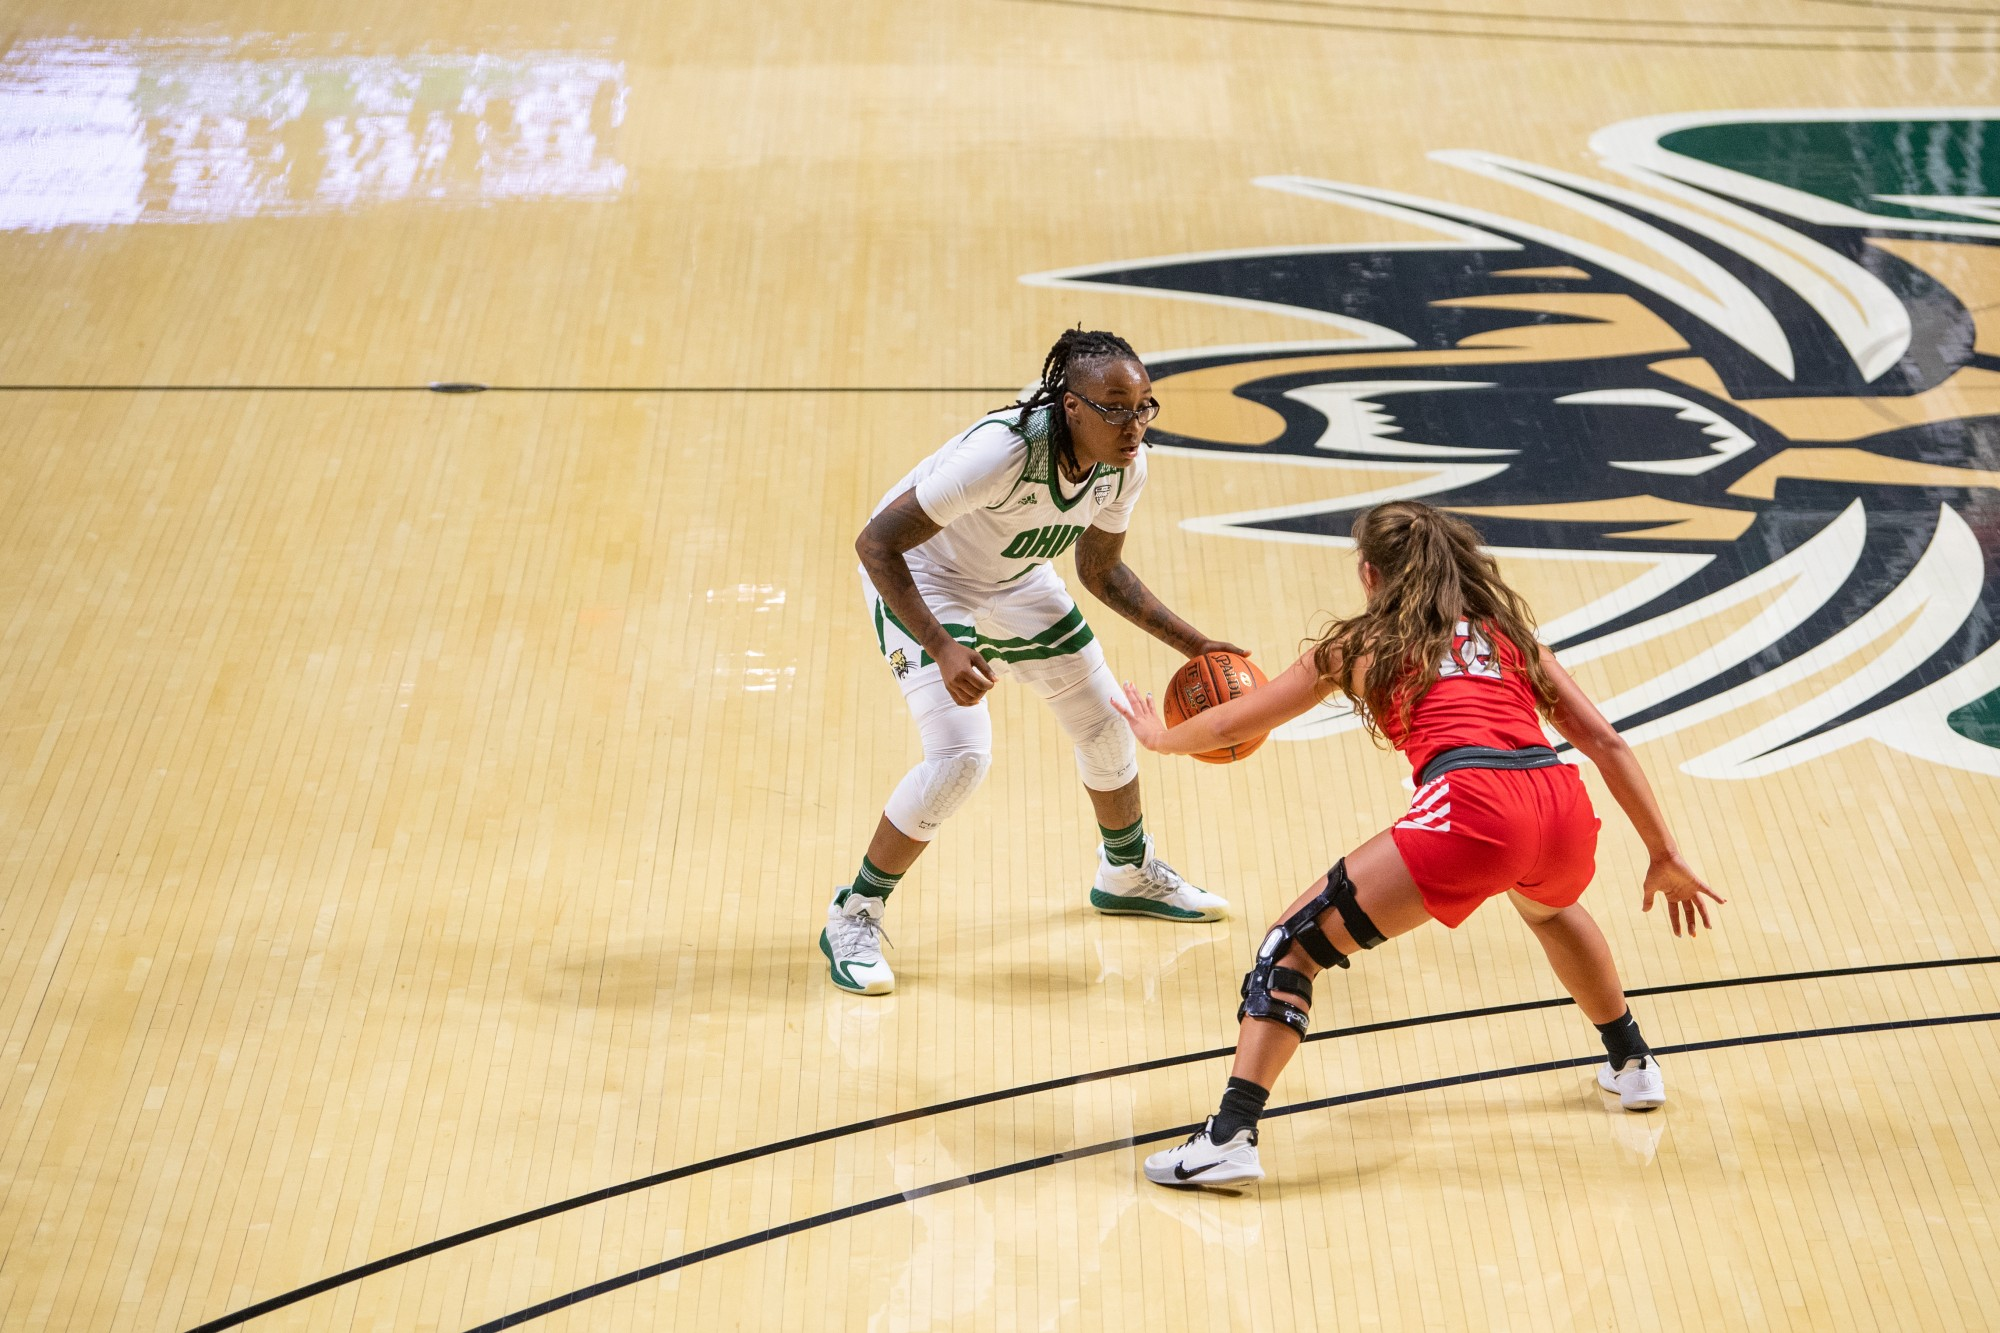 Ohio's Erica Johnson dribbles the ball during Ohio's match against Liberty on Wednesday, Nov. 25, 2020, in The Convo. Ohio beat Liberty 76-72.